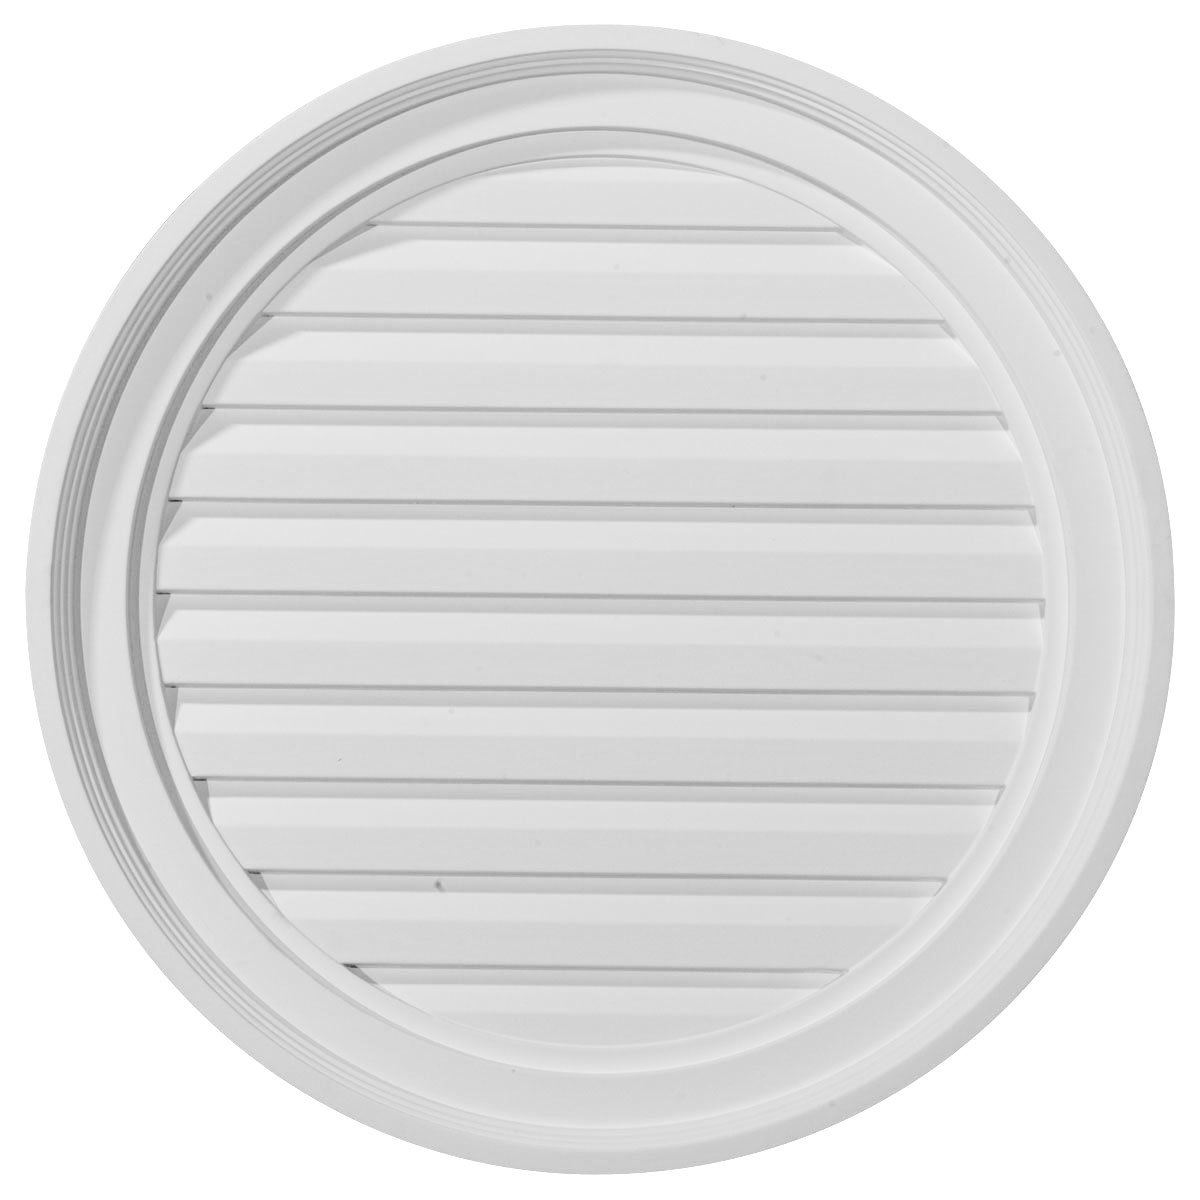 Ekena Millwork GVRO22F 22-Inch W x 22-Inch H x 2 1/8-Inch P Round Gable Vent Louver, Functional